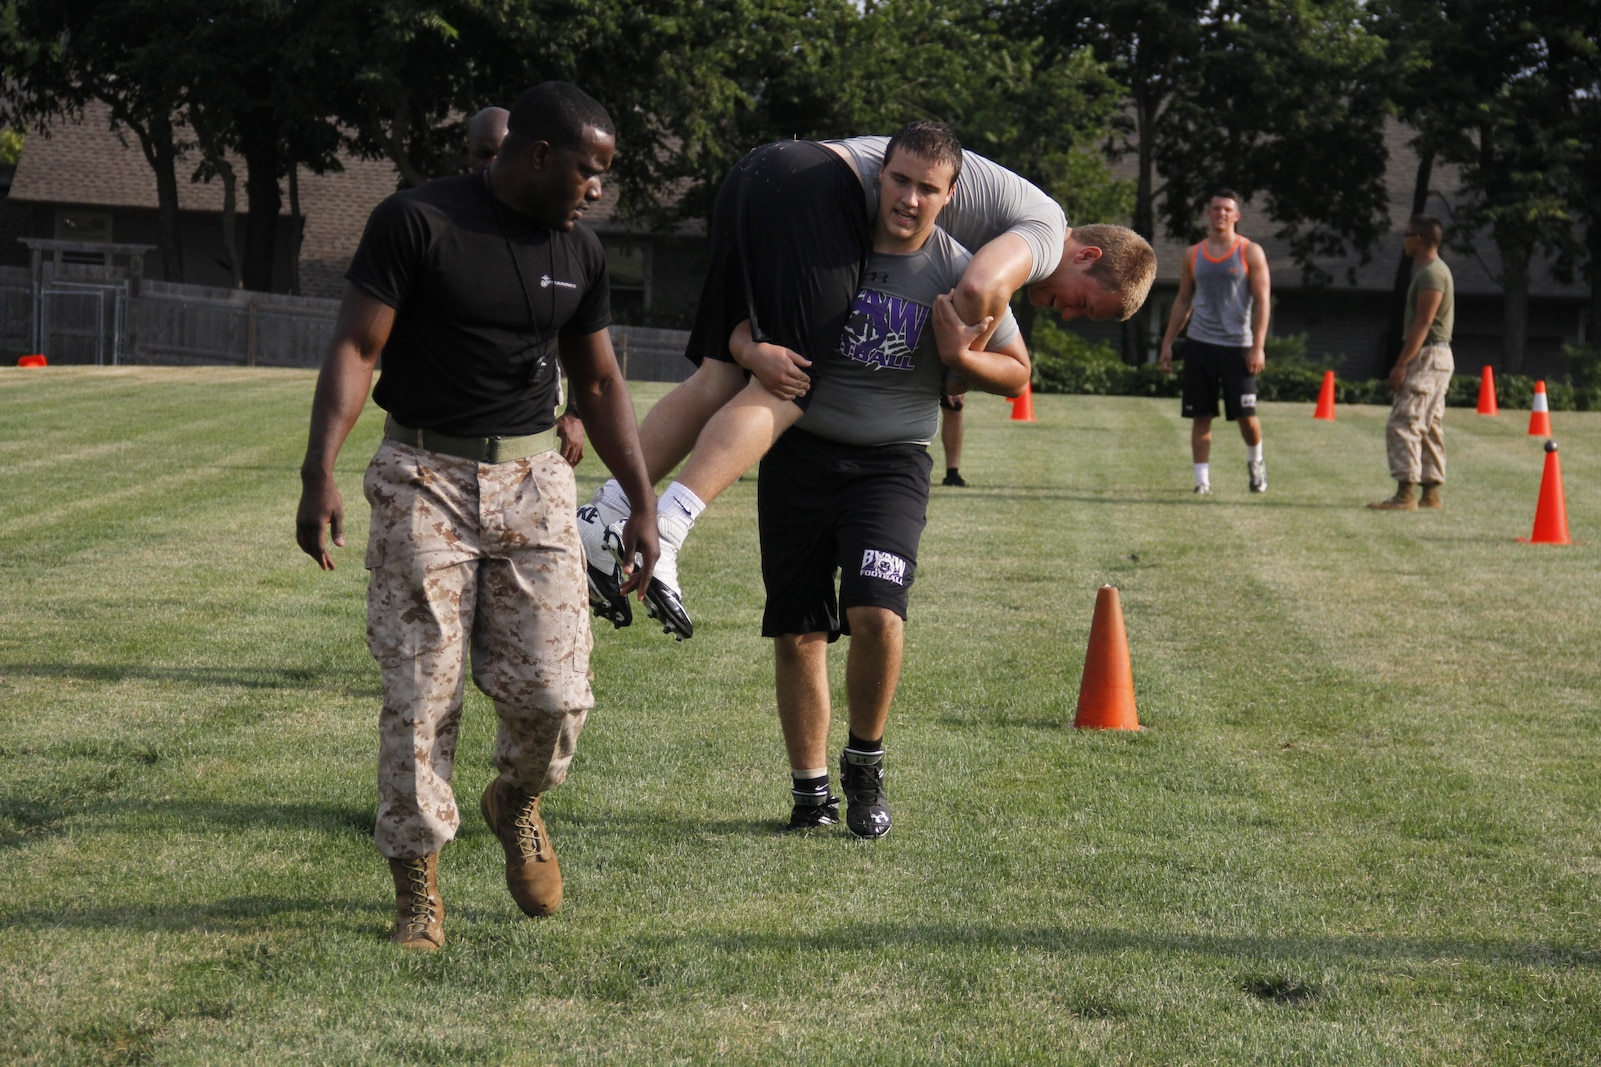 Eric W. Naulty, a junior Blue Valley Northwest High School Huskies offensive guard and defensive tackle, fireman carries Jack J. Kutey, a senior Huskies defensive end, as Sgt. Laronald R. McKinney, a Marine Corps Recruiting Station Kansas City, Recruiting Sub-Station Olathe recruiter, encourages Naulty to push through at the Huskies' practice field Aug. 5, 2014 during the Combat Fitness Test. The fireman carry makes up the maneuver-under-fire portion of the CFT and participants must perform pushups, a high and low crawl, cone-agility drills, a buddy drag, throw a dummy grenade, and finish with a sprint, carrying 30-pound ammunition cans.